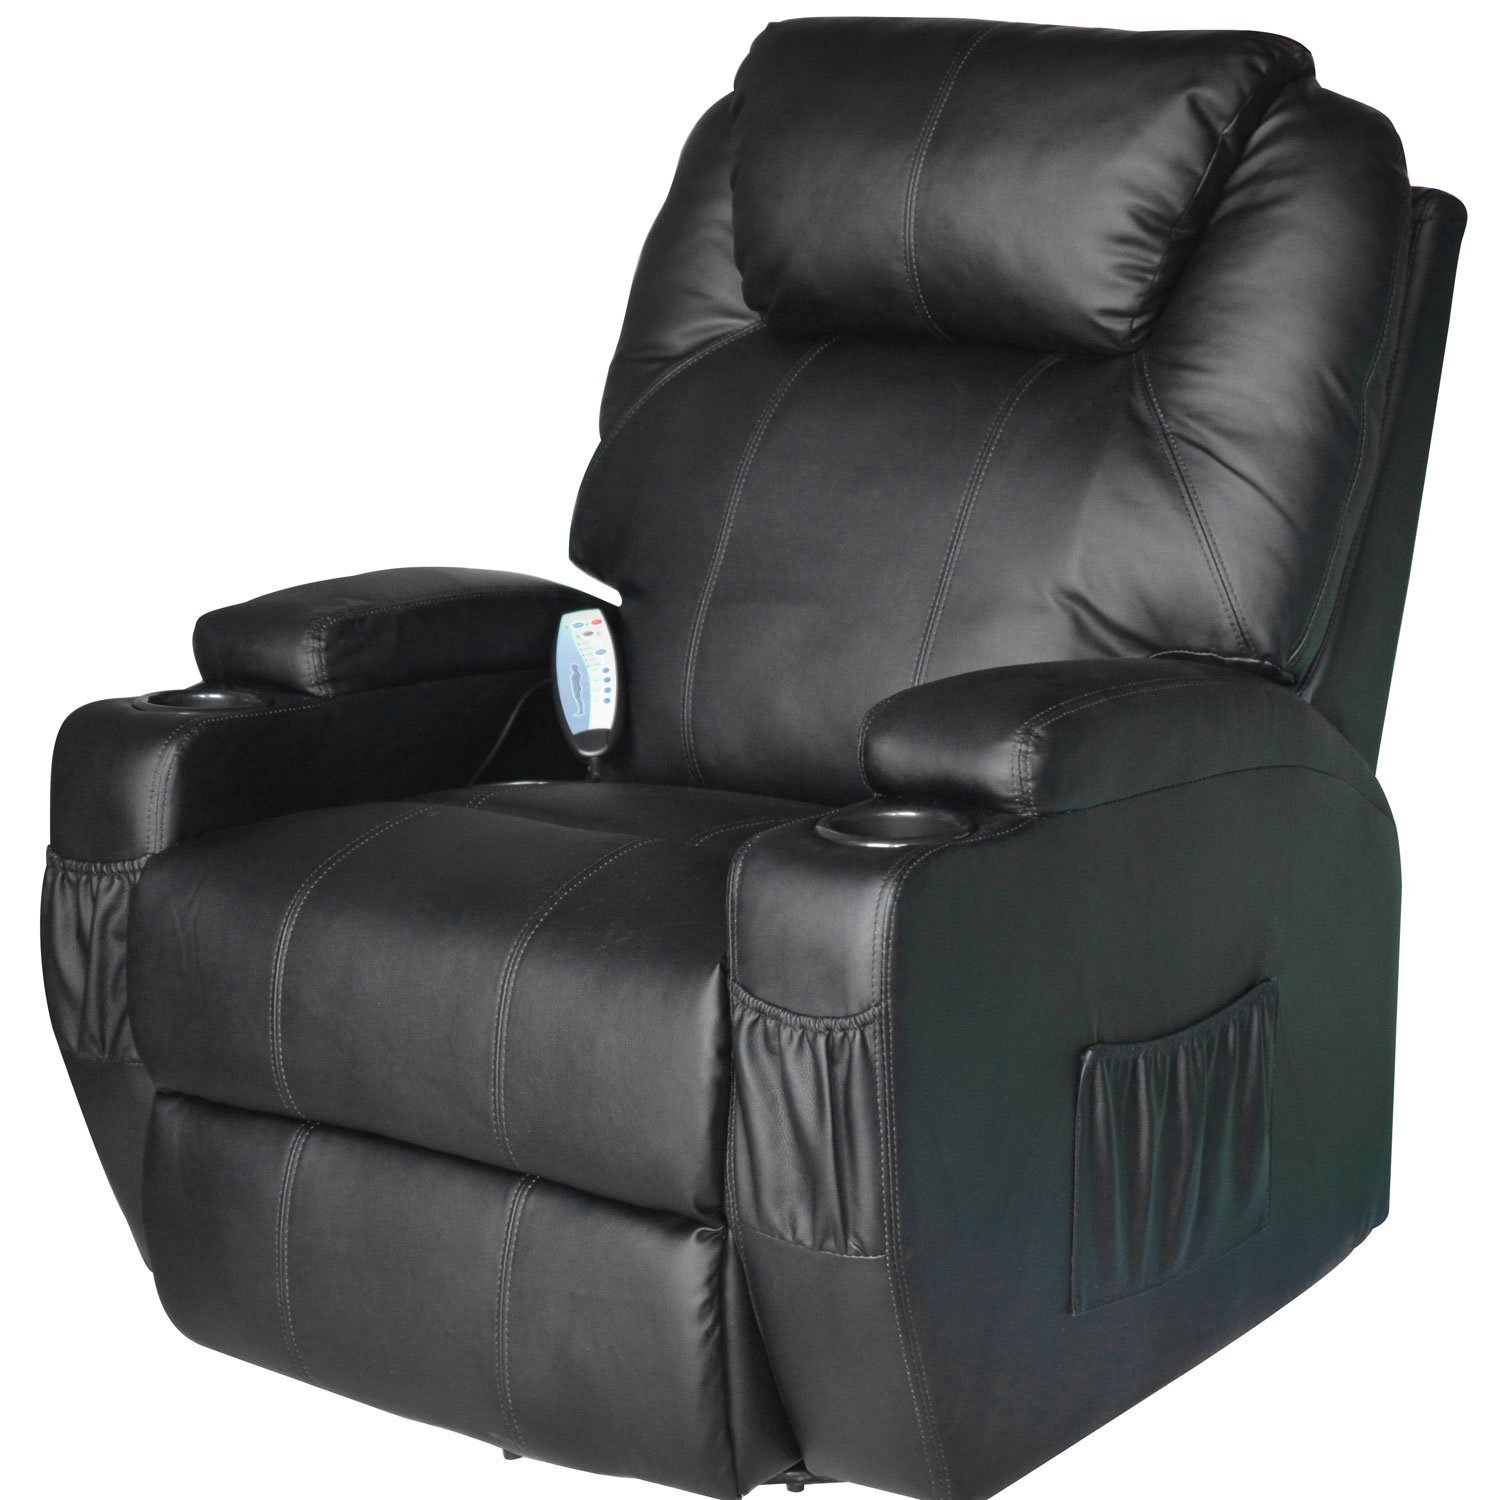 HOMCOM Chair Rocking Recliner Swivel 360 ° Massage Massage In Simipelle 84x92x109 Cm Black